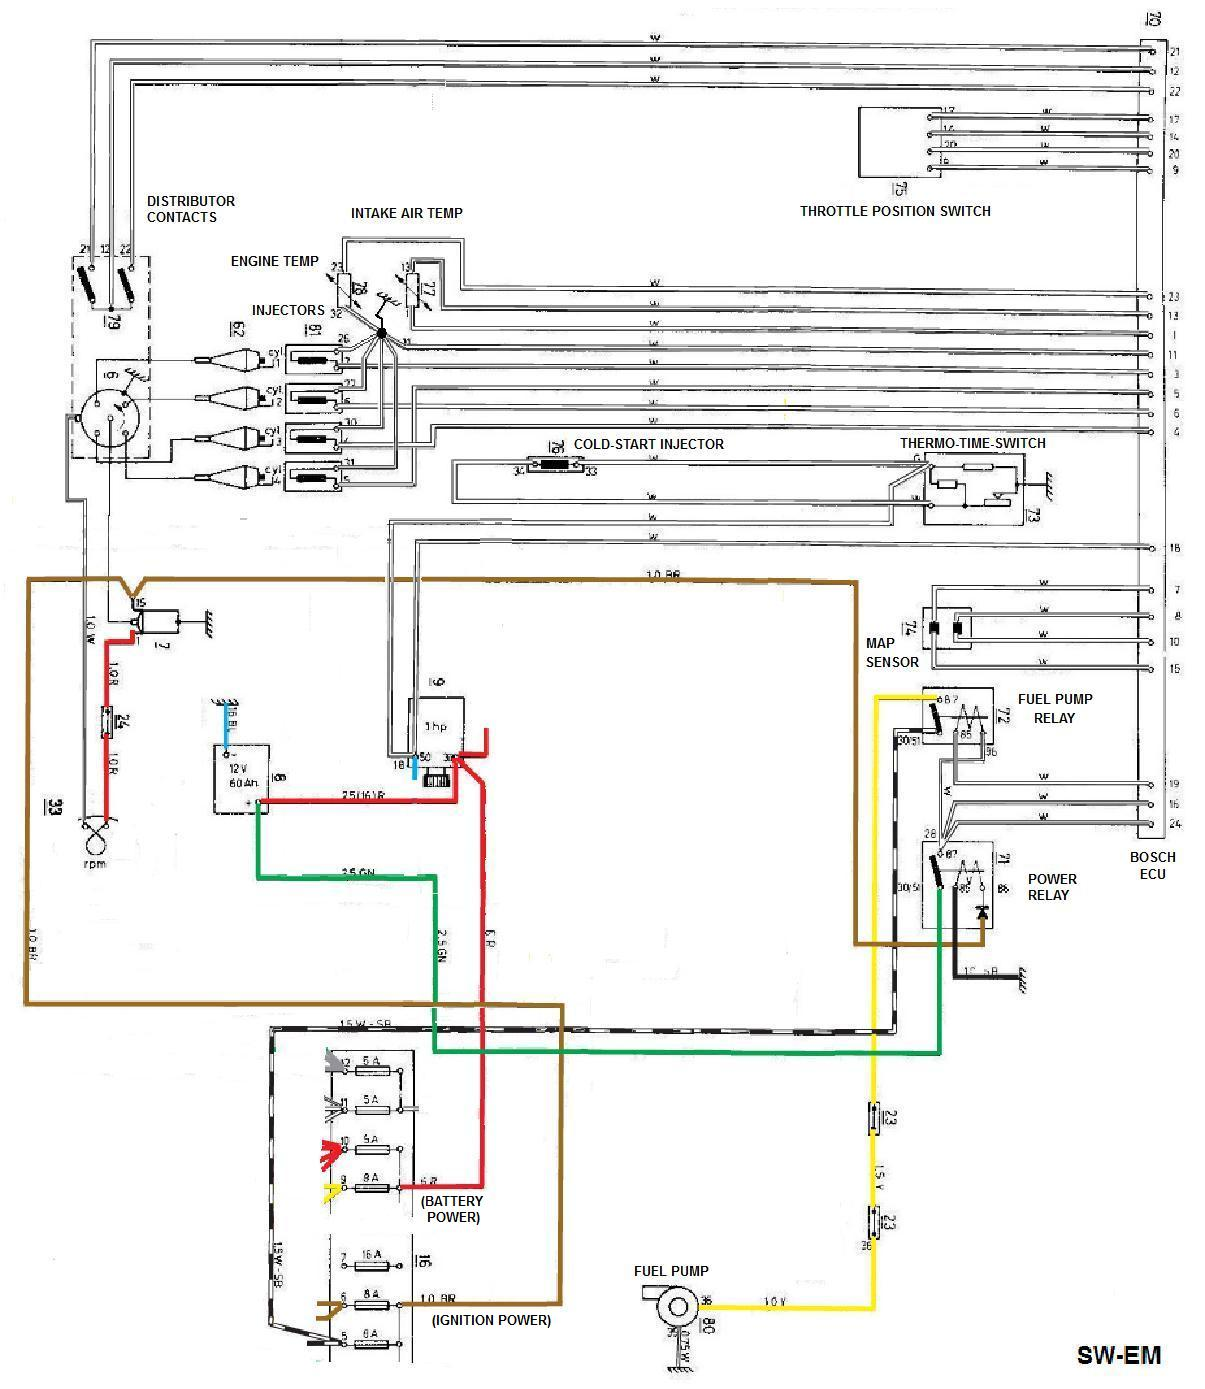 Sw Em Bosch D Jet Notes Fuel Gauge Wiring Diagram Schematic Shown Below Is The Later Arrangement There No Ecu Controlled Relay But A Thremo Time Switch Located On Cylinder Head And Also Sensing Coolant